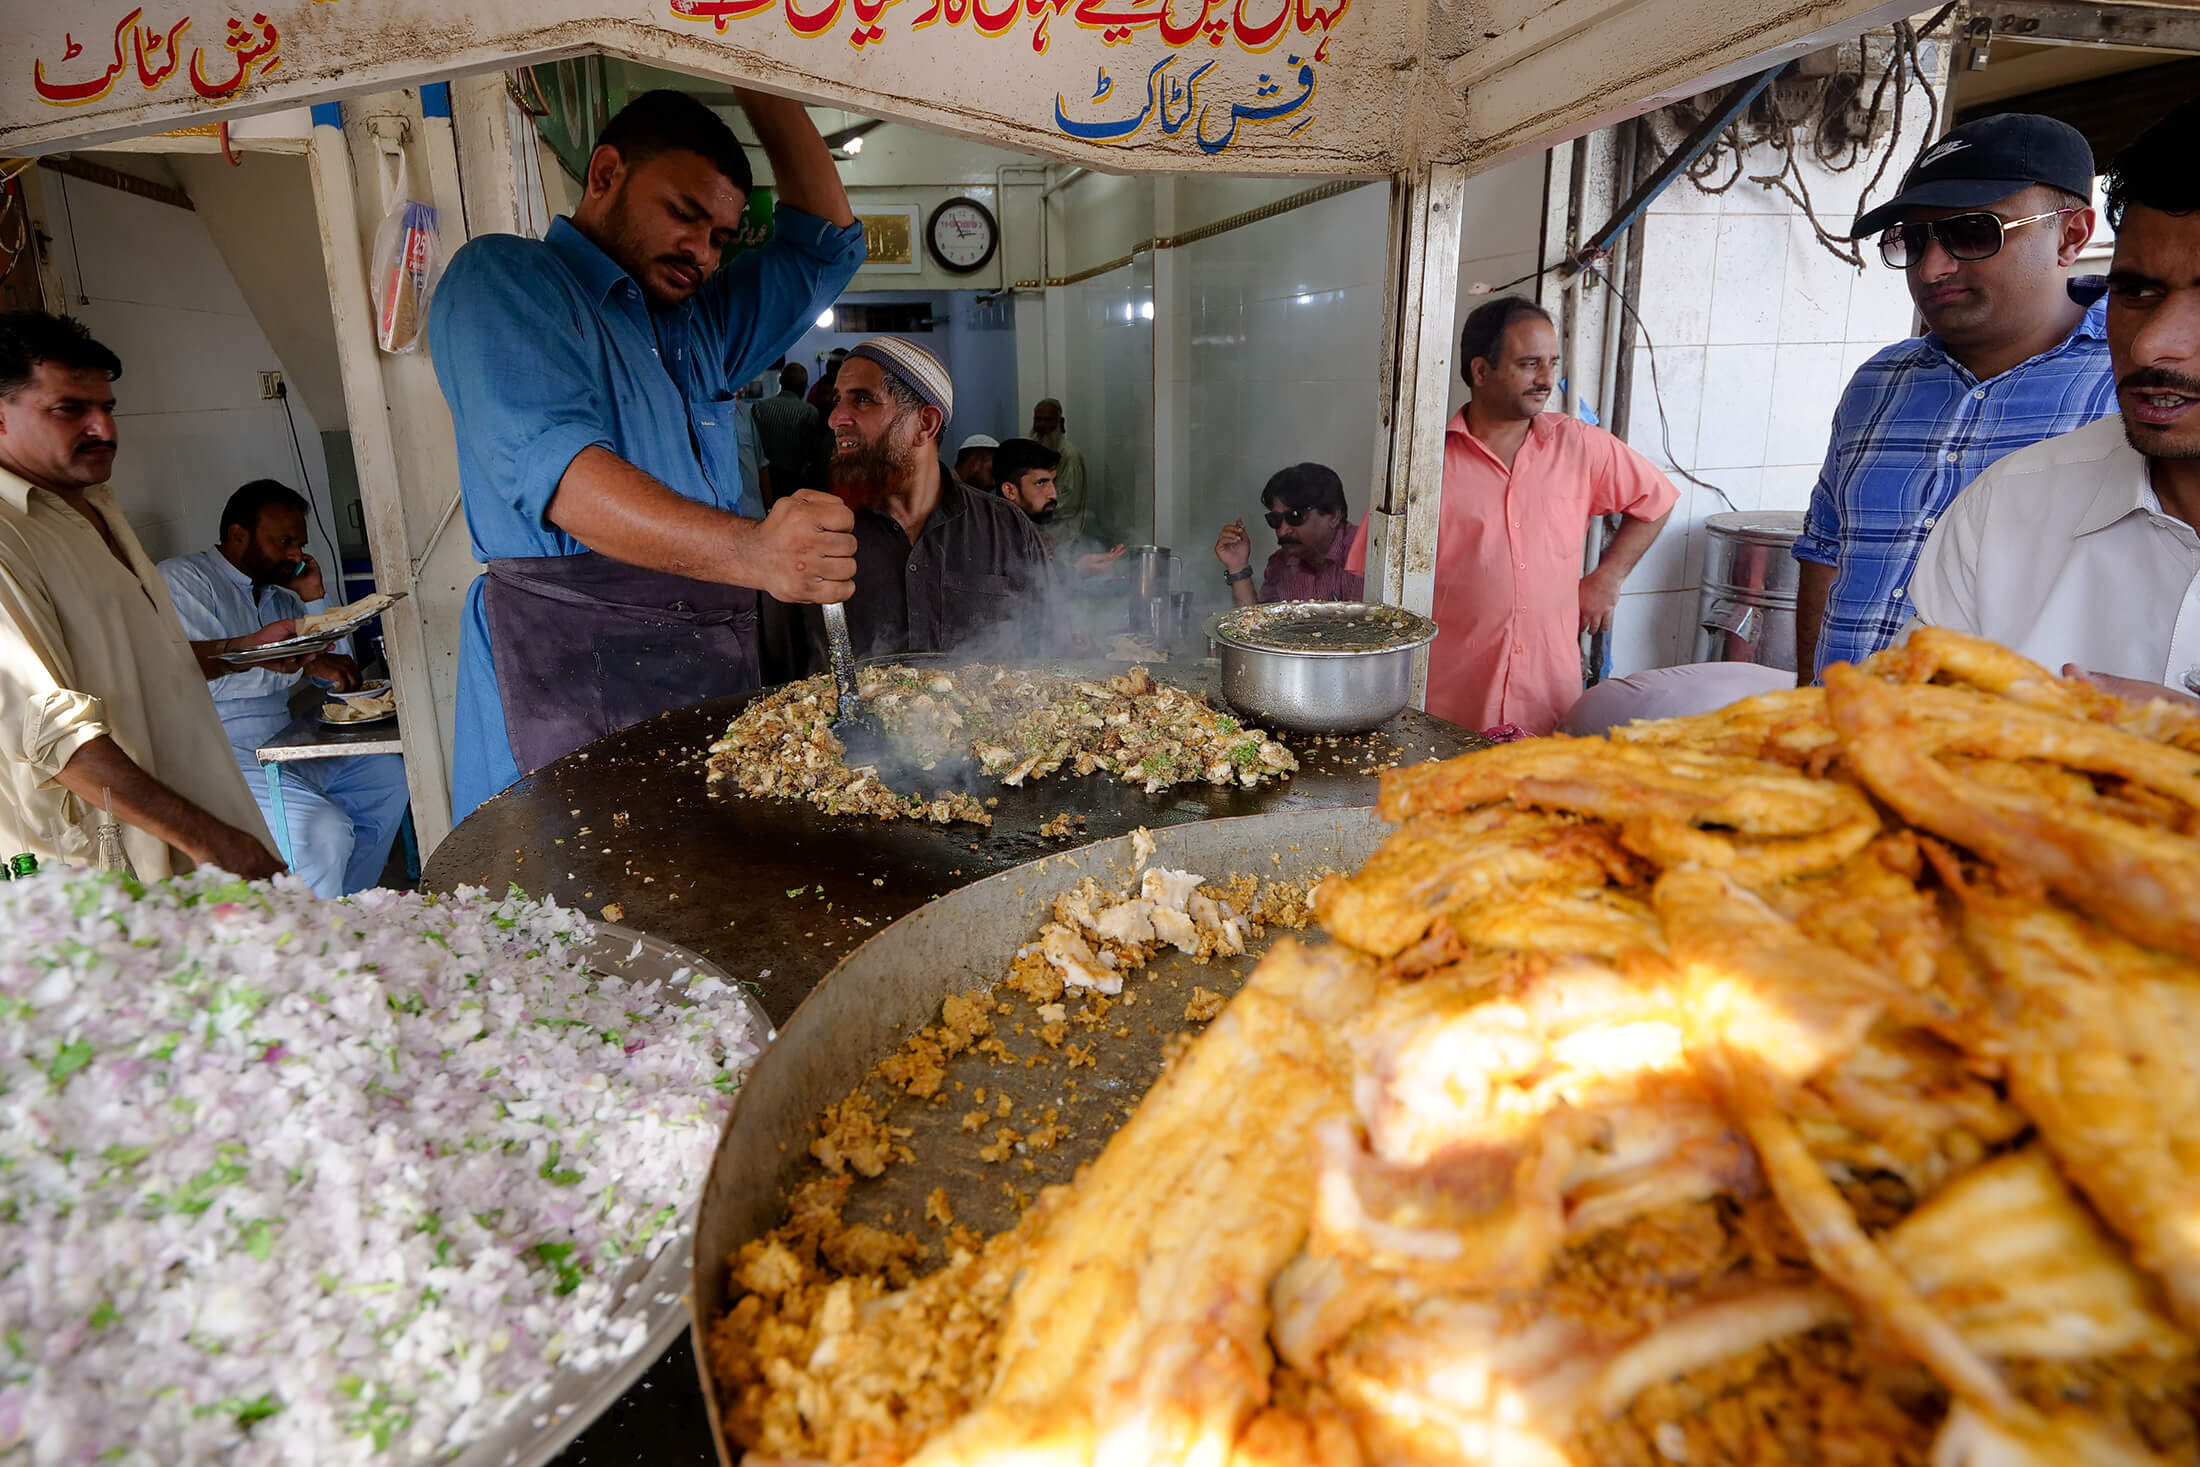 Pakistani Street Food Guide - A Must-Eat Tour of Karachi